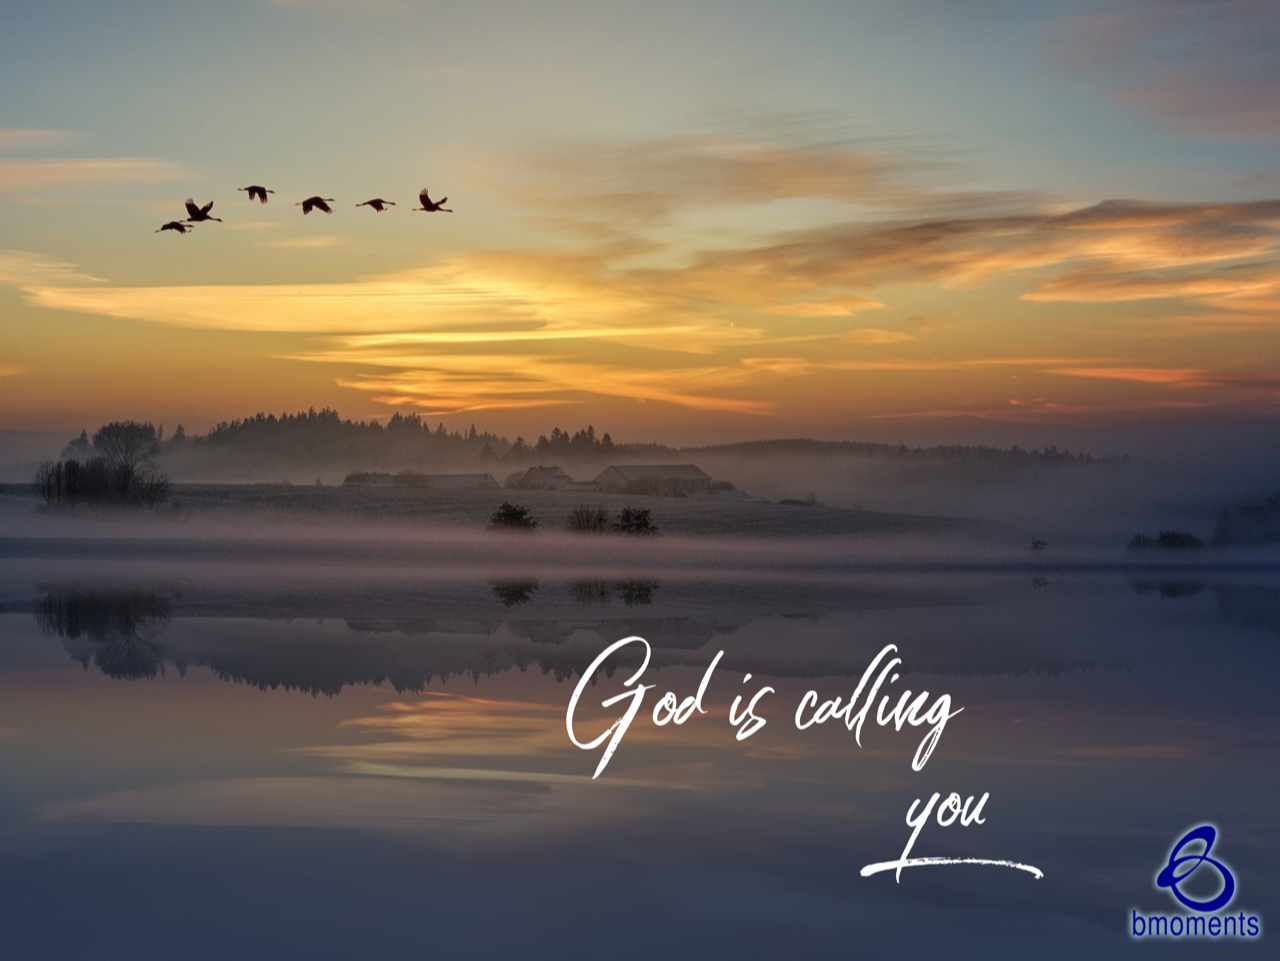 Listen: Christ Is Calling You to Him